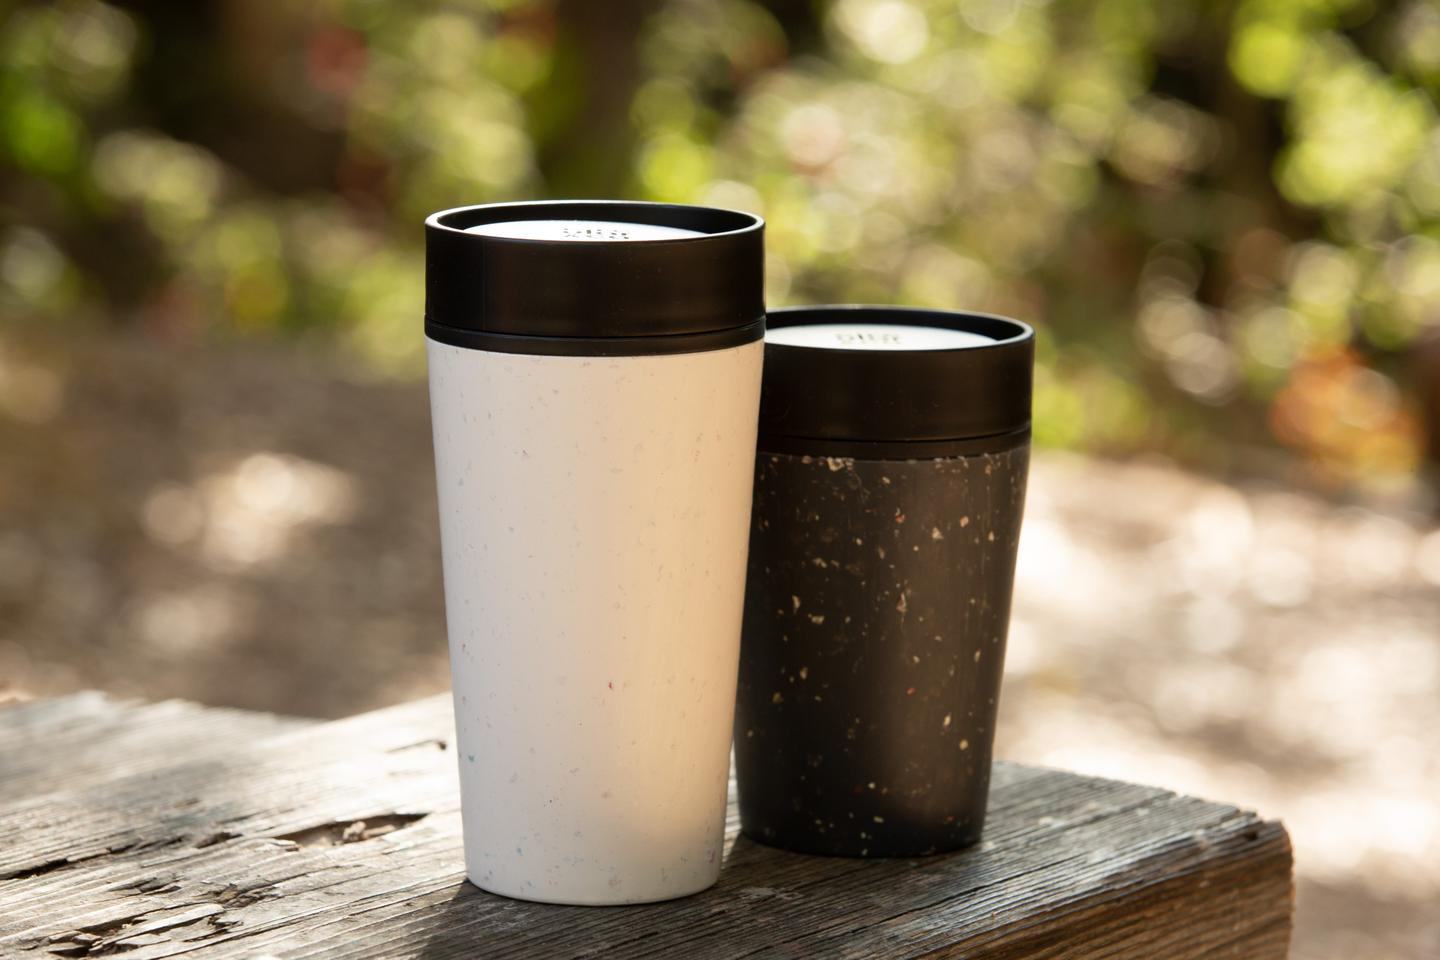 The Circular Travel mug starts off as recycled material and ends up that way